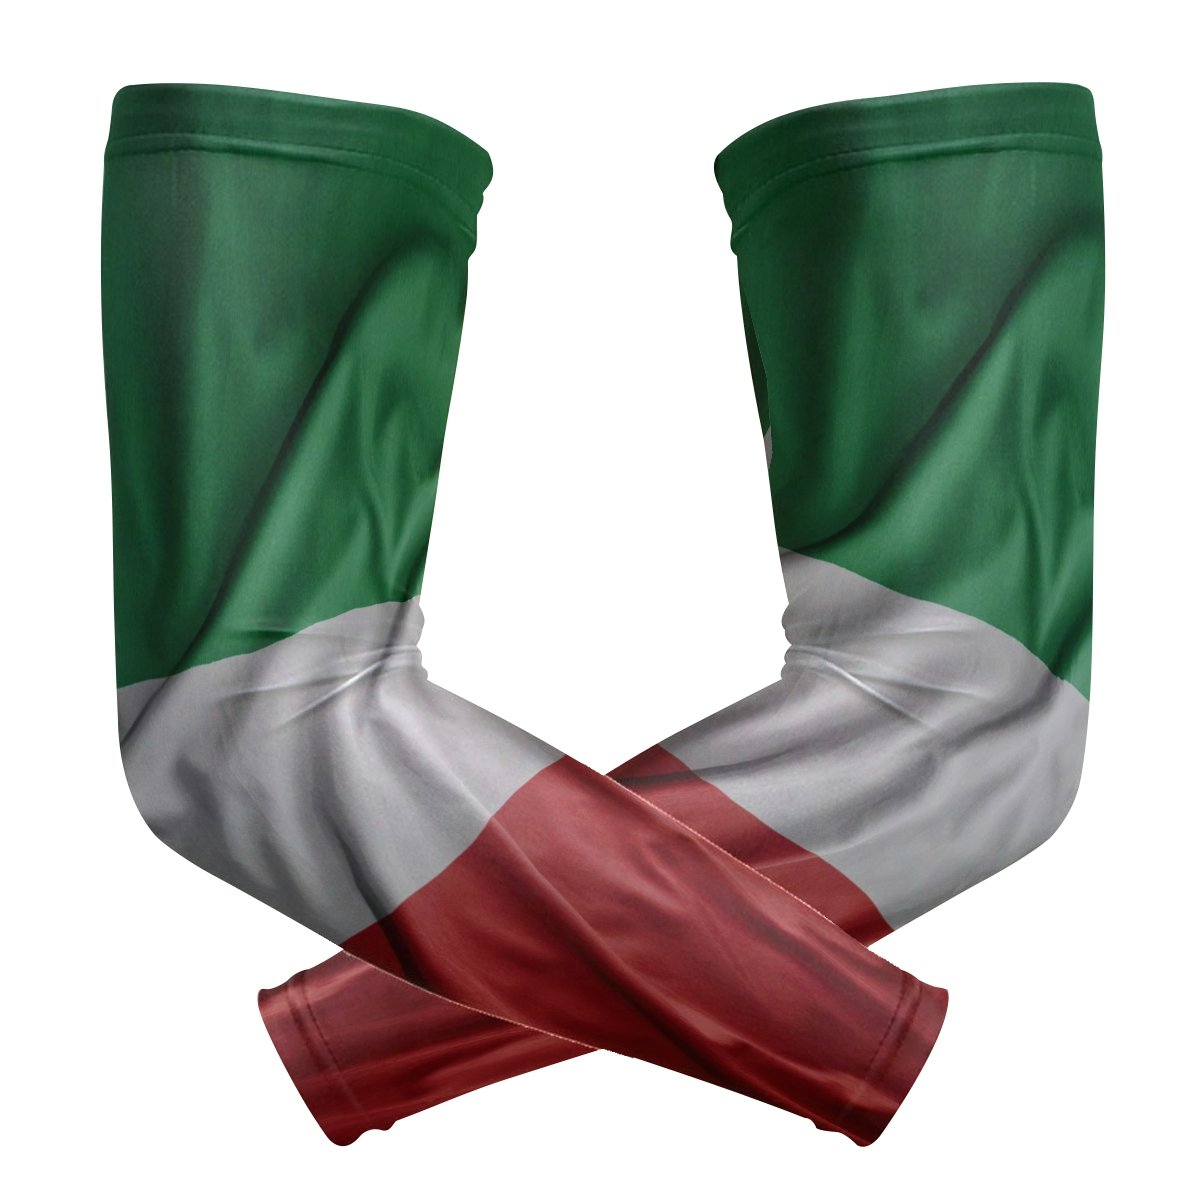 super3Dprinted Italy Flag Sports Sleevelet Oversleeves Riding Protection Arm Sleeves